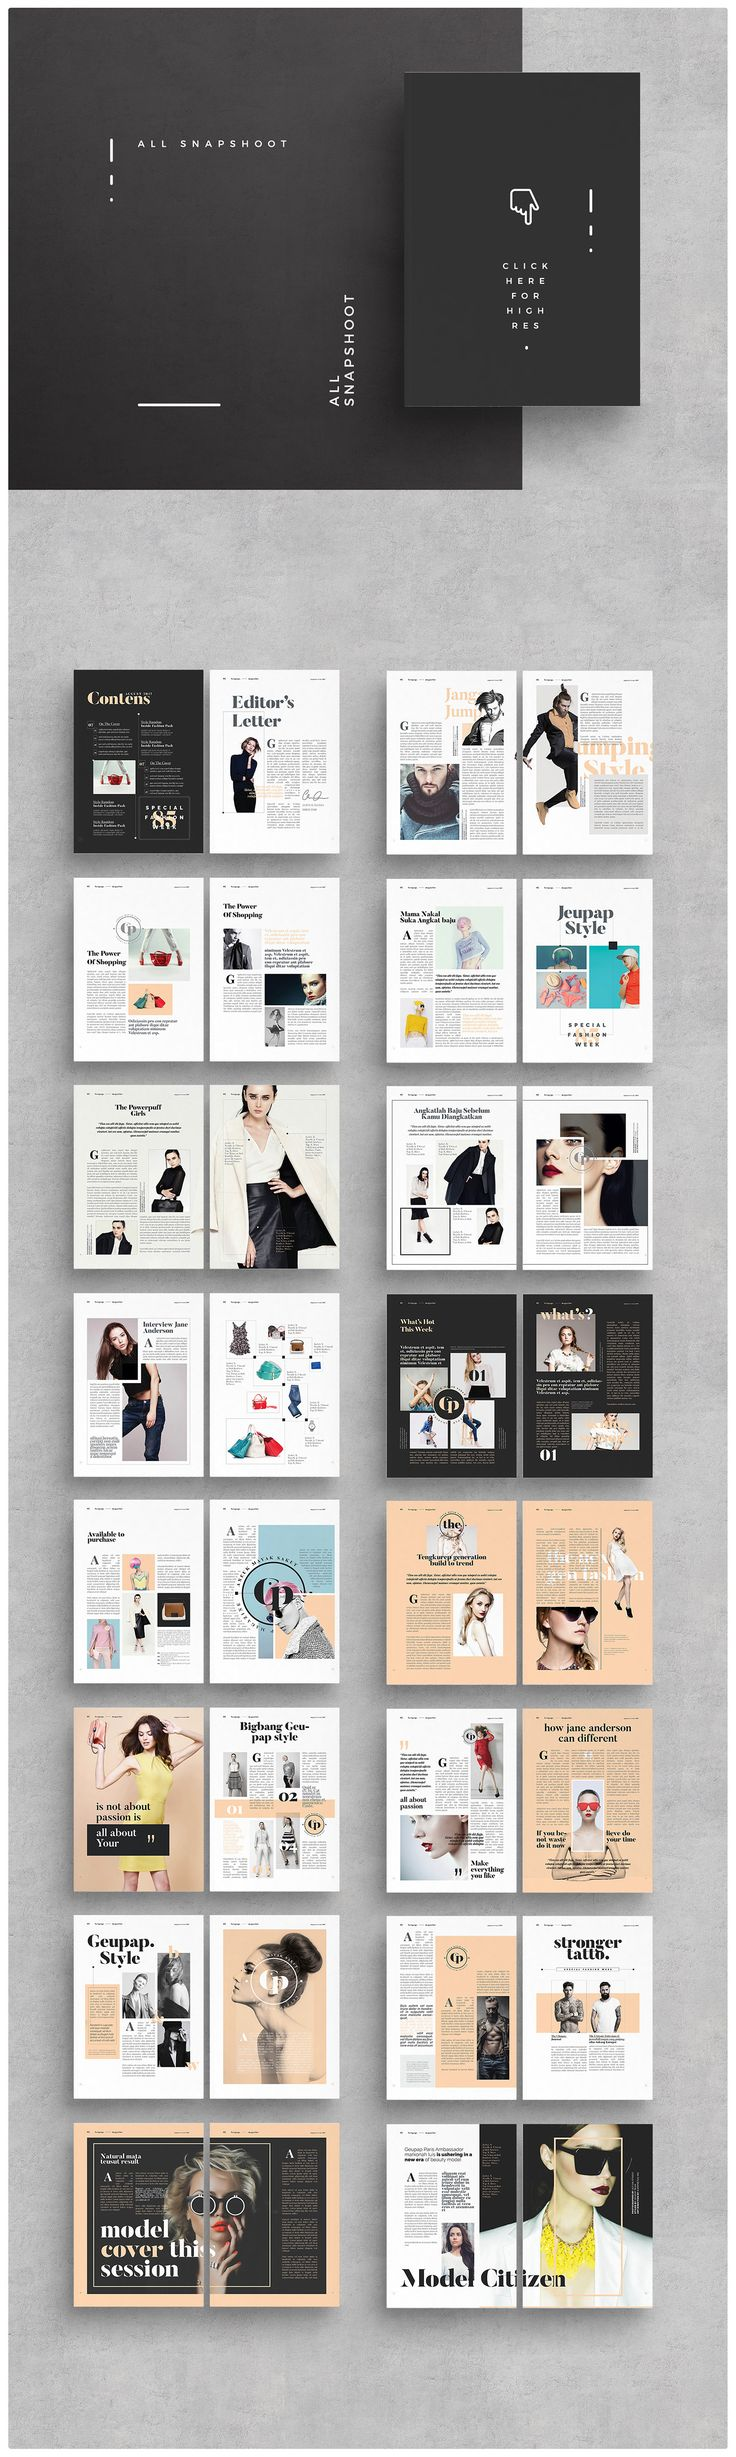 Berühmt The 25+ best Catalog layout ideas on Pinterest | Booklet layout  XX52